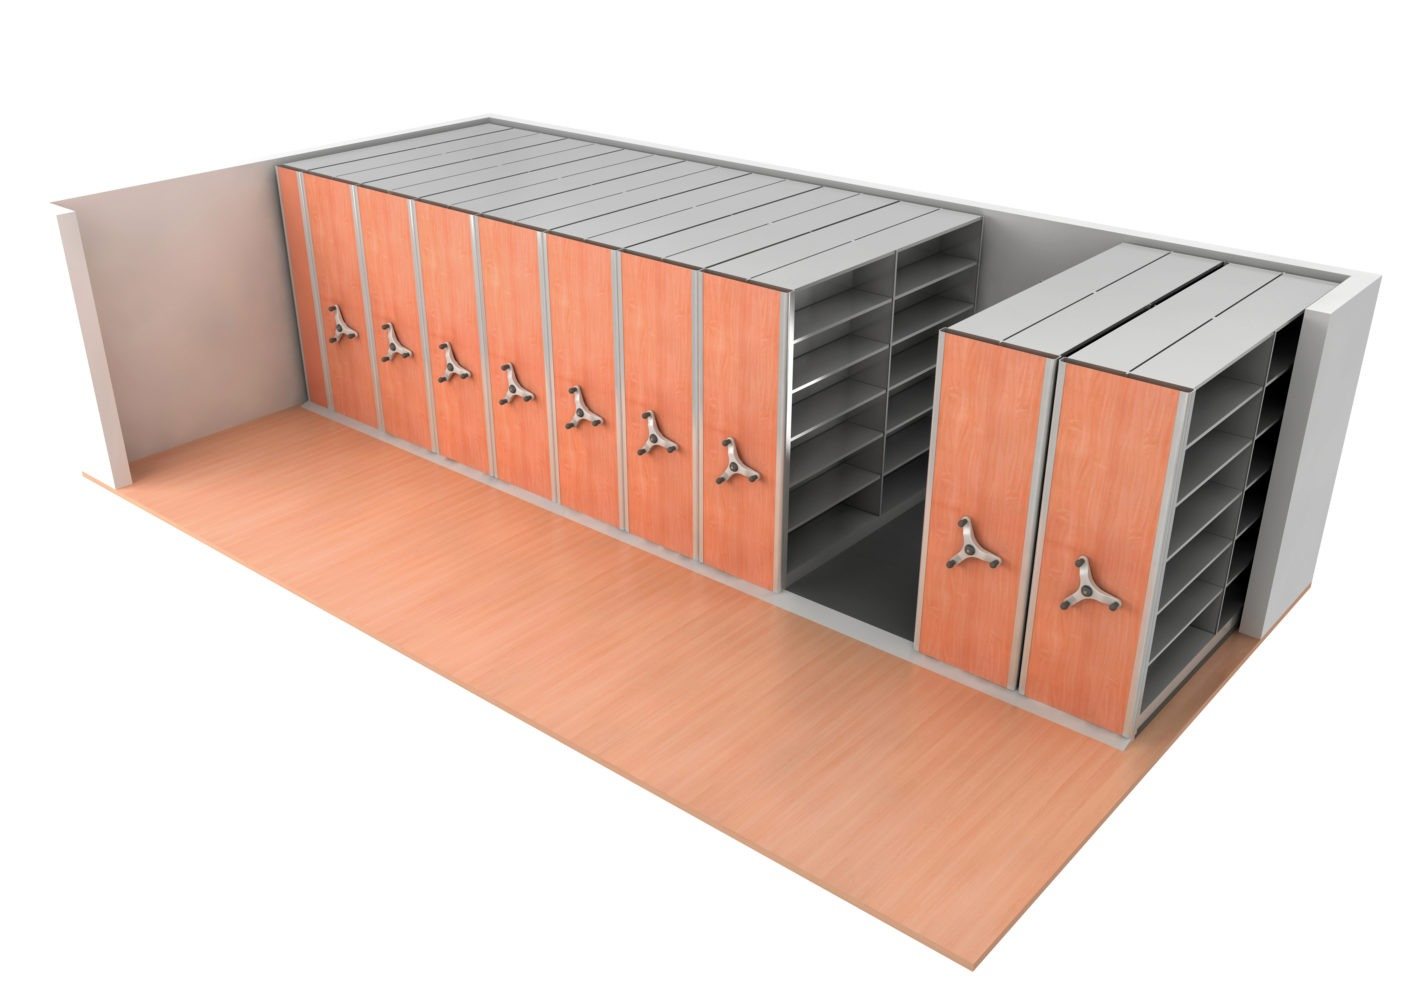 Compact Storage units are standard shelving components mounted upon mobile bases that run effortlessly on tracks.